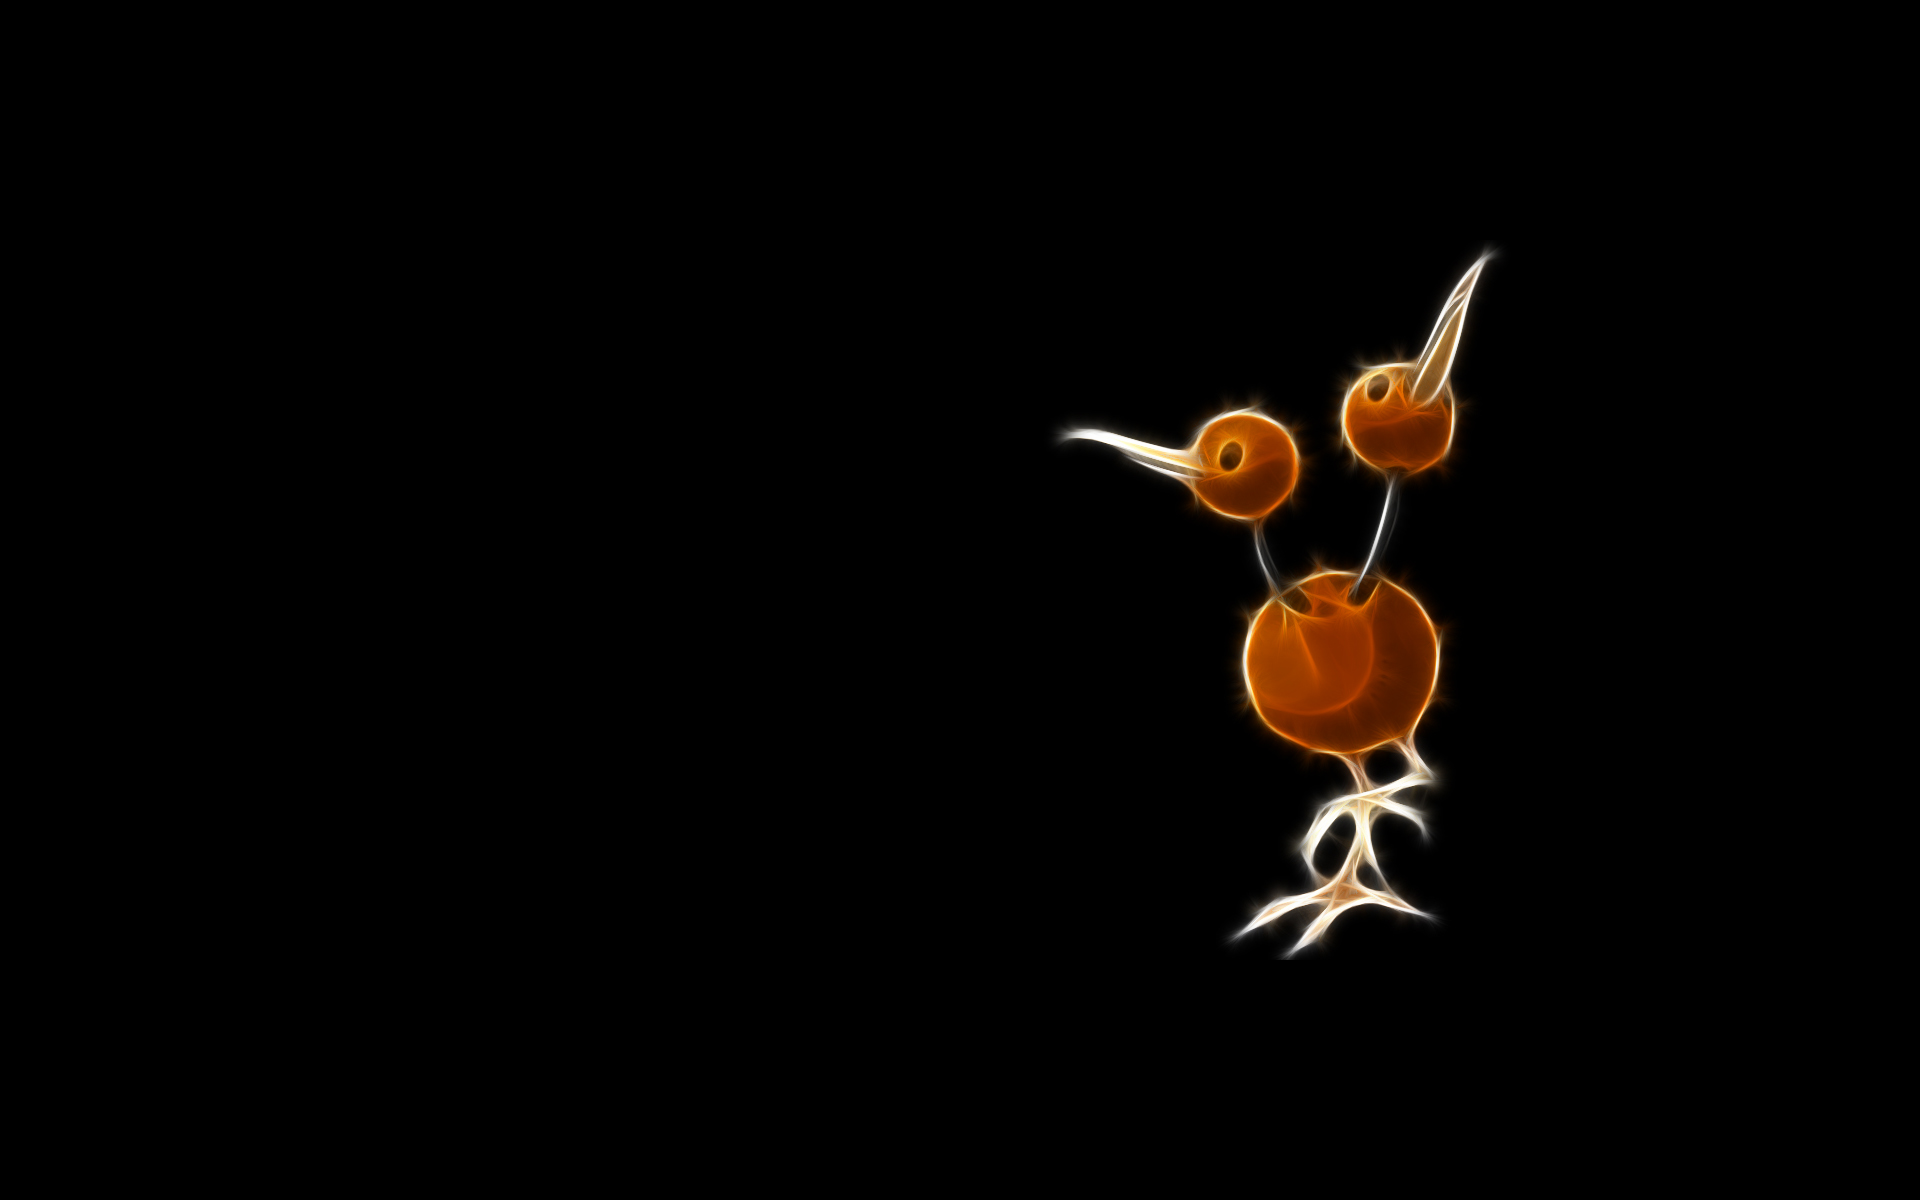 Doduo Wallpaper Full HD Pictures 1920x1200